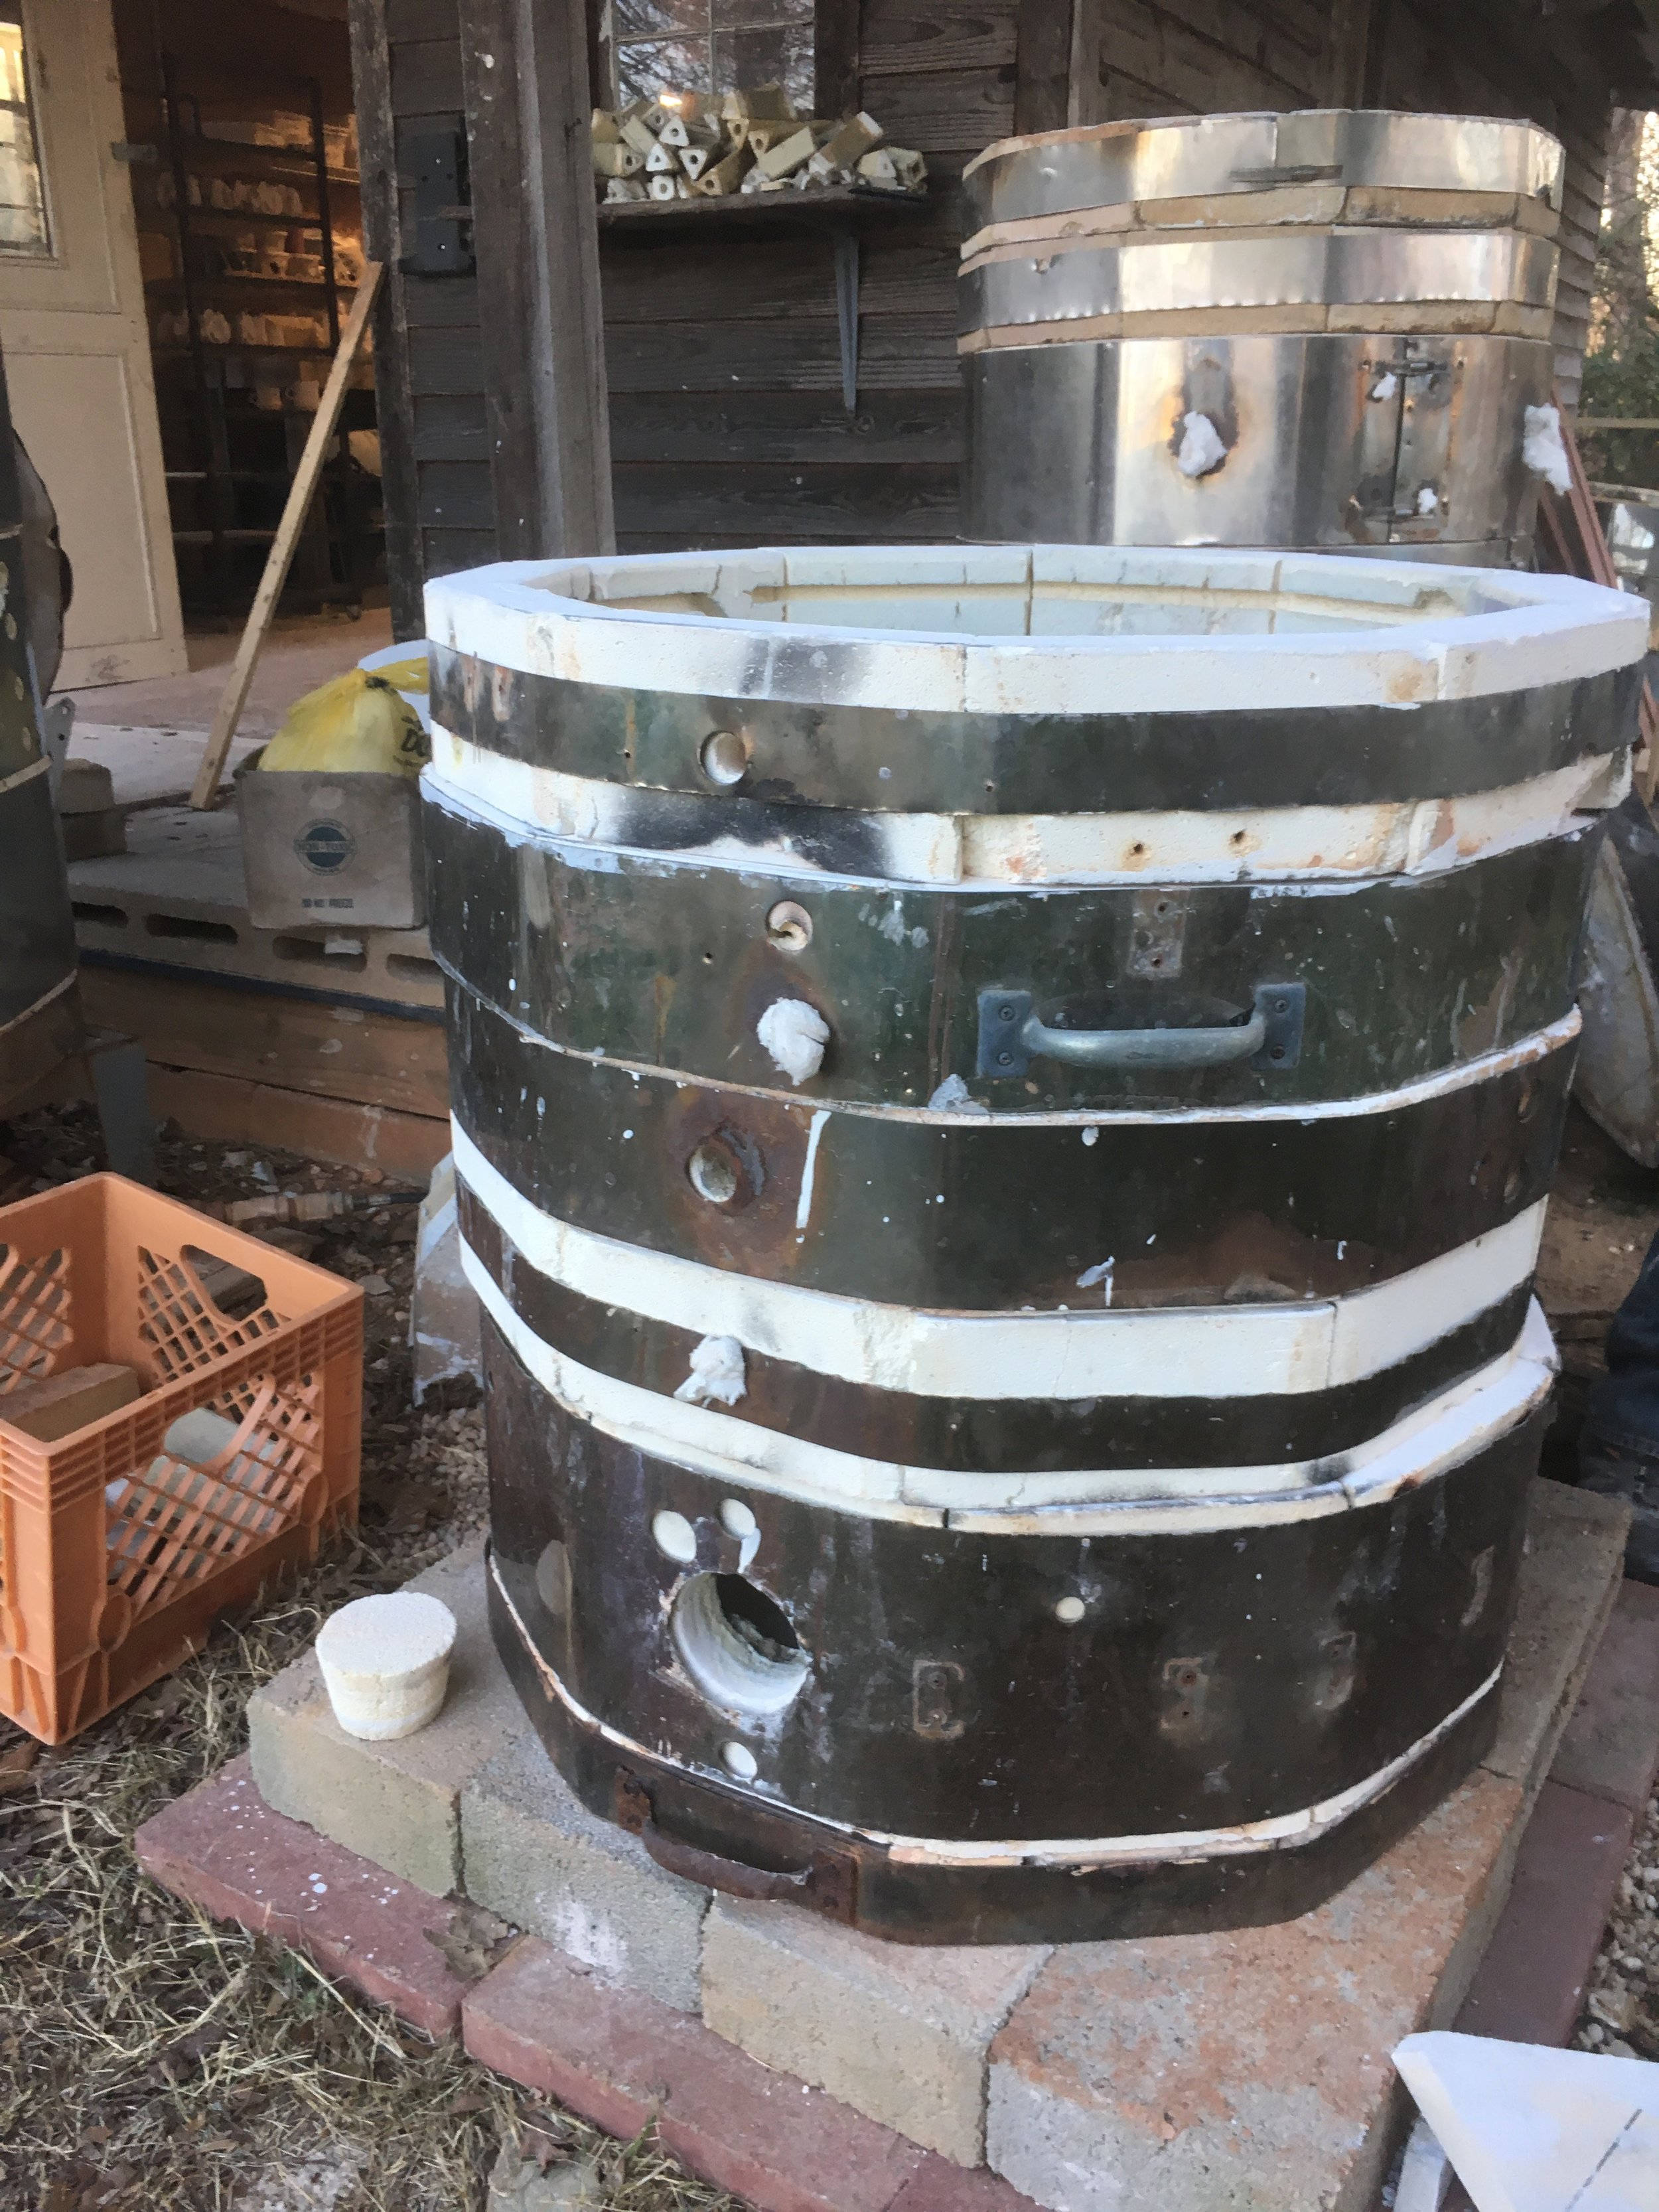 The body of the soda kiln. The kiln could be made larger or smaller depending on the number of rings that are stacked.